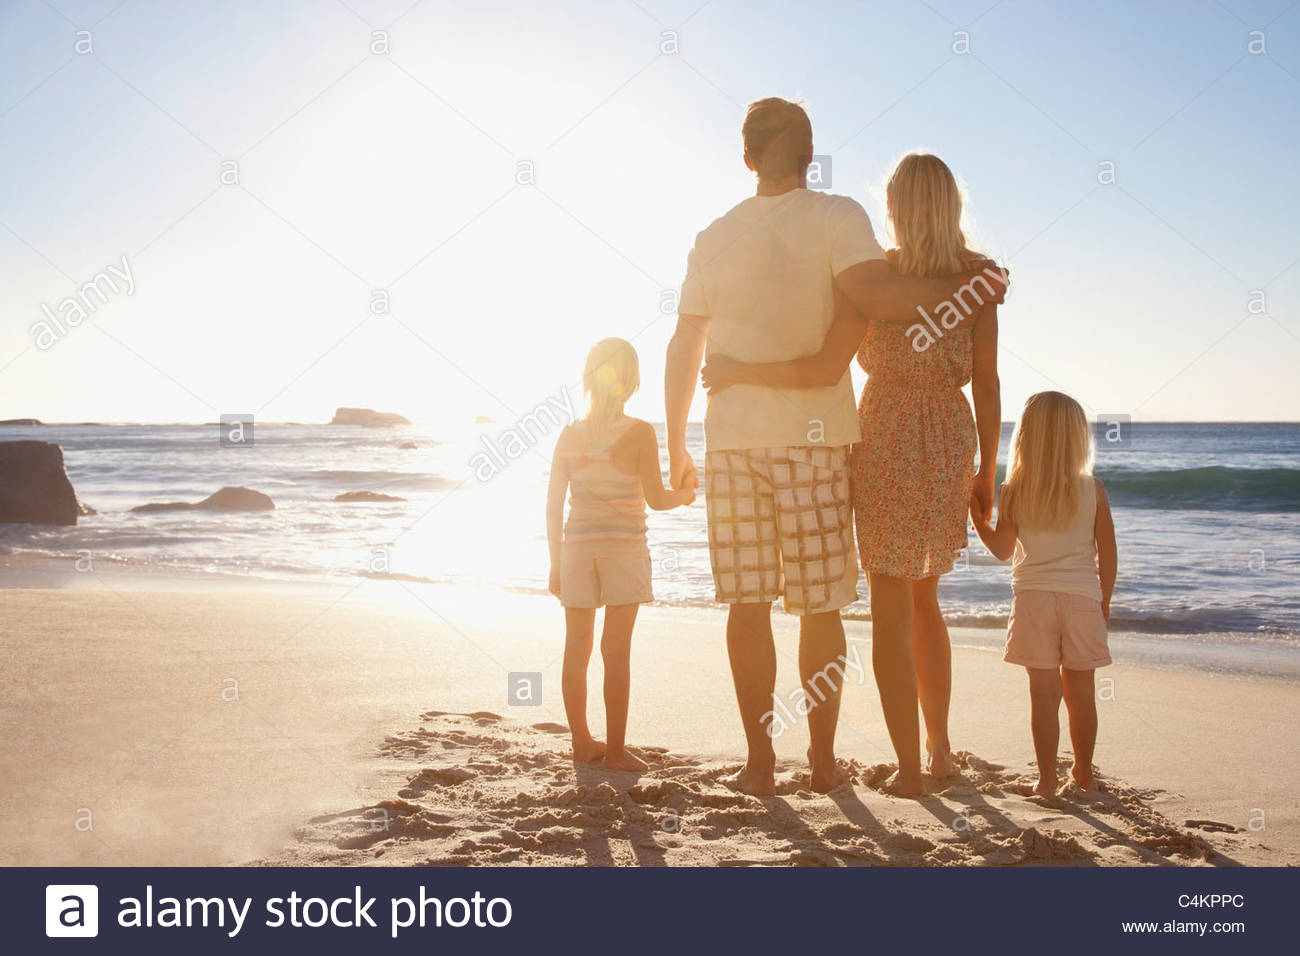 Family on beach holding hands Photo Stock